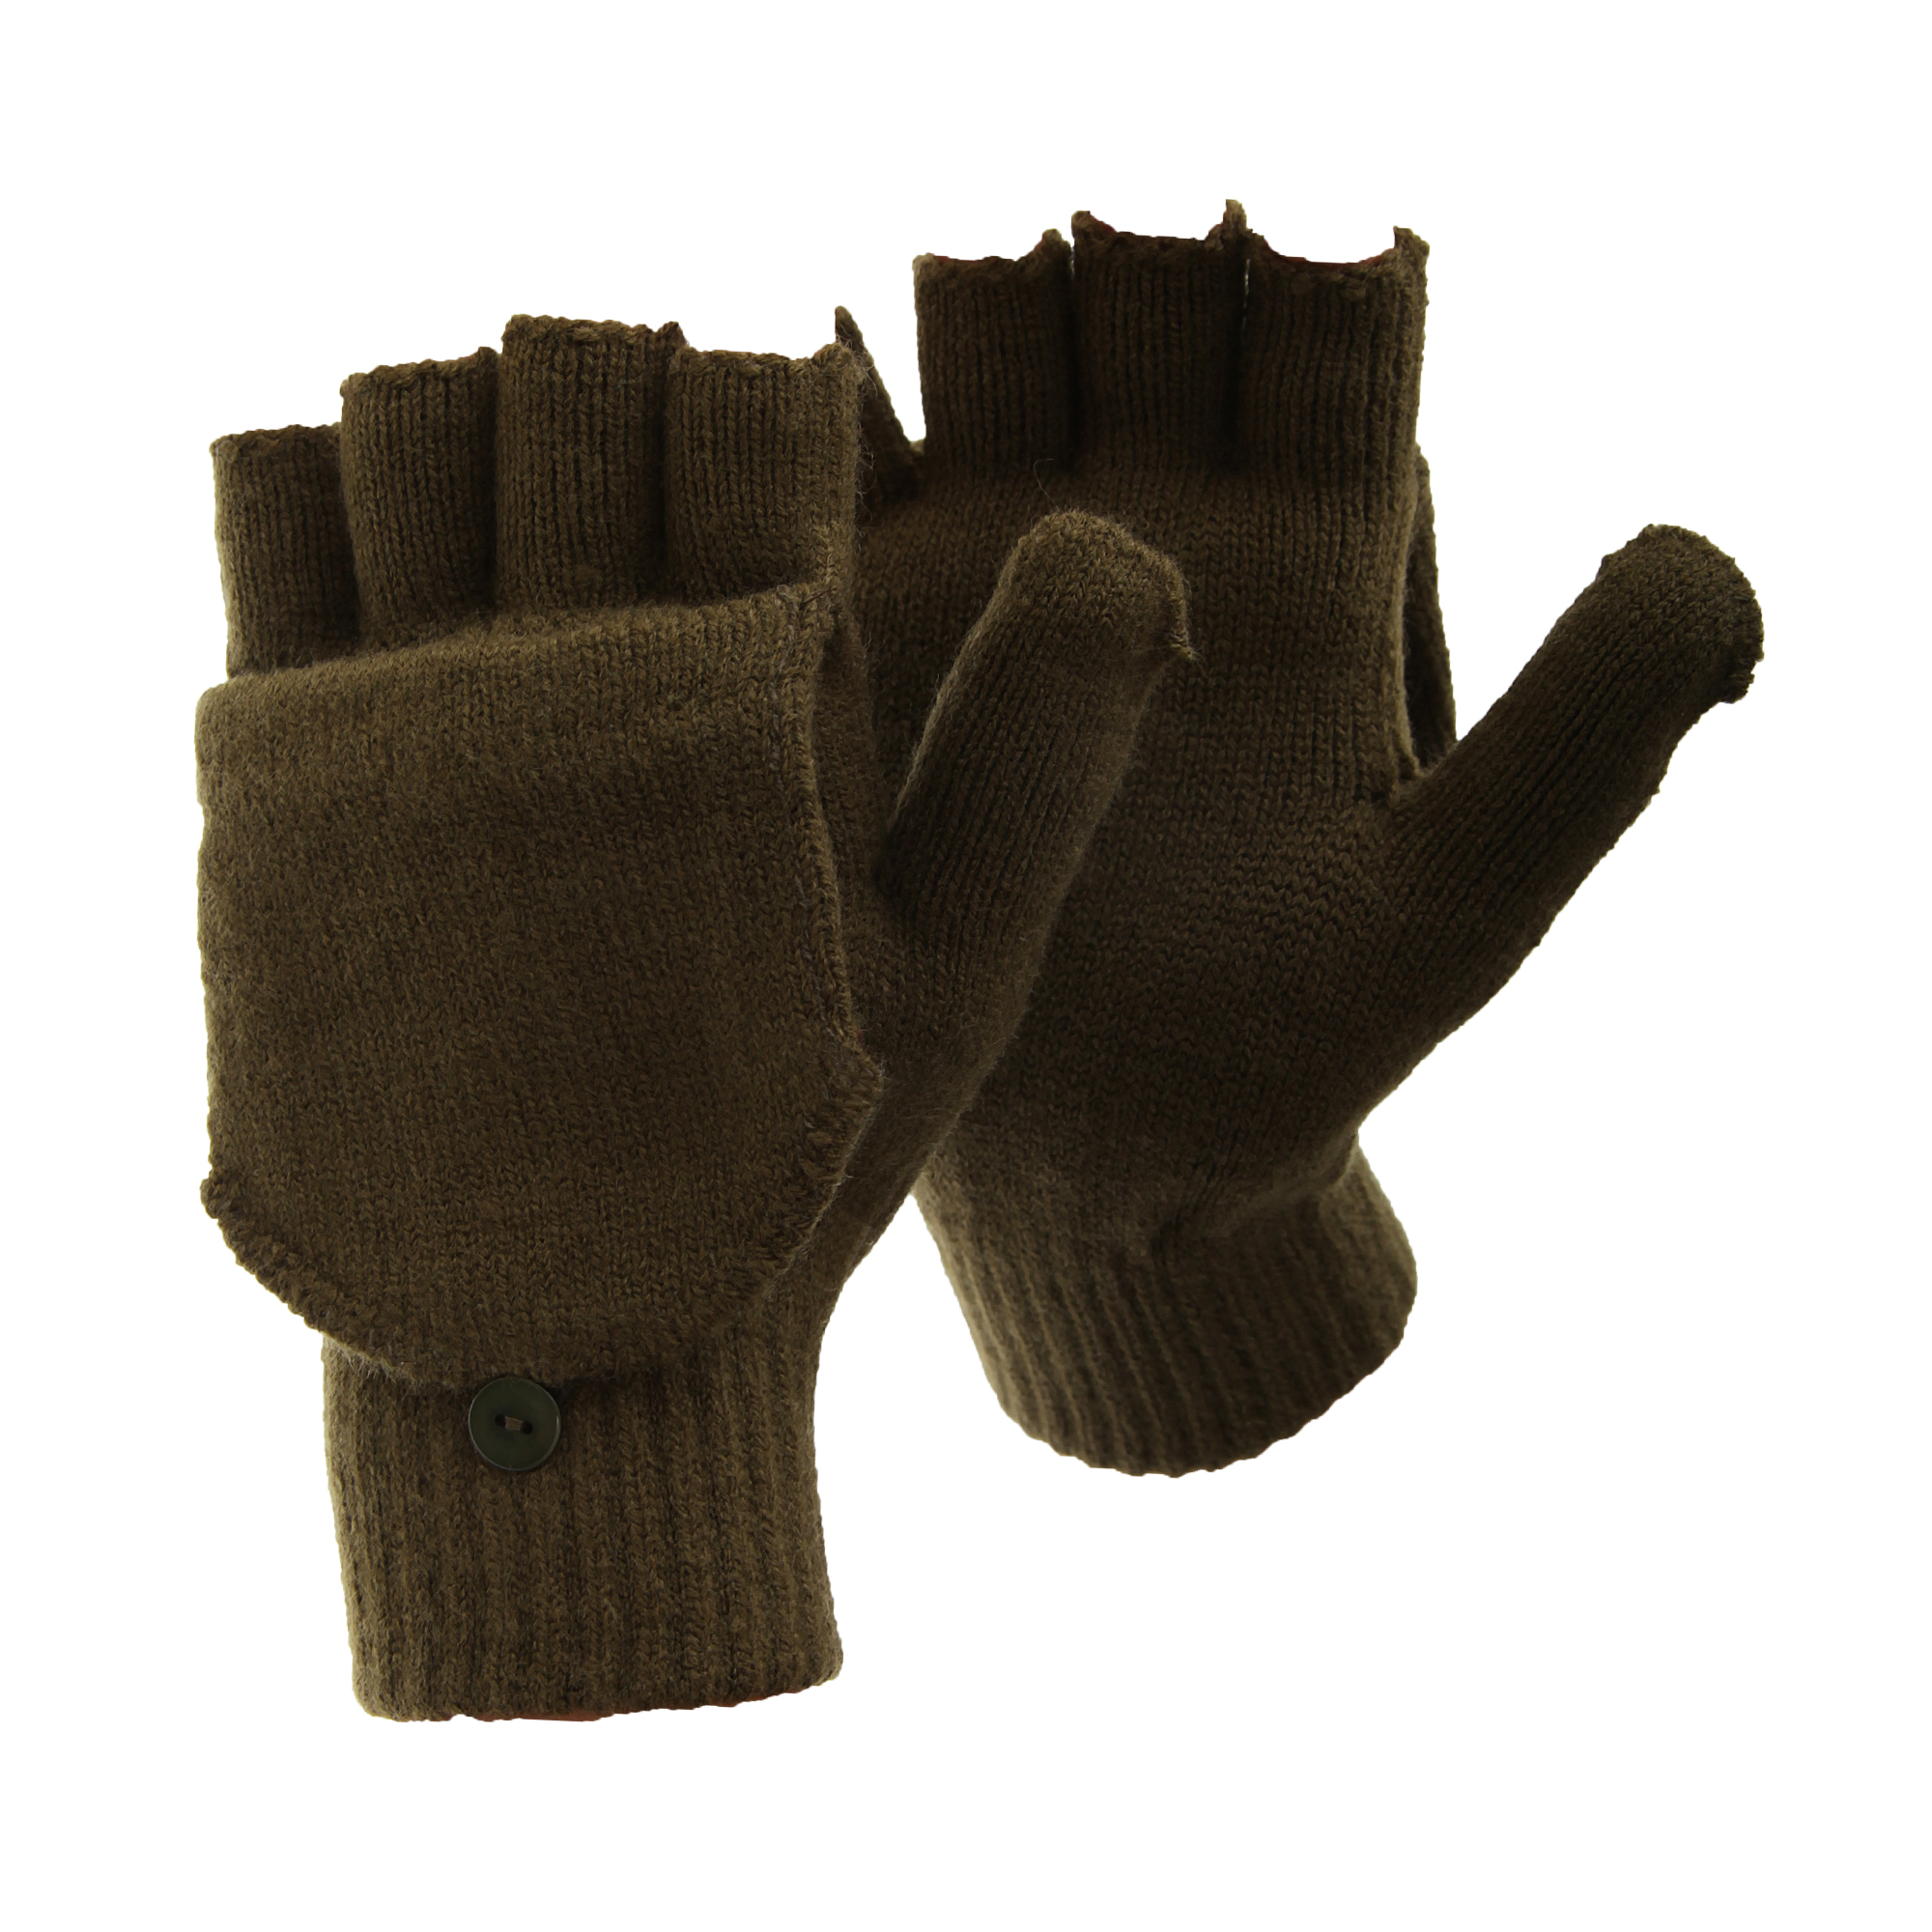 Fingerless driving gloves